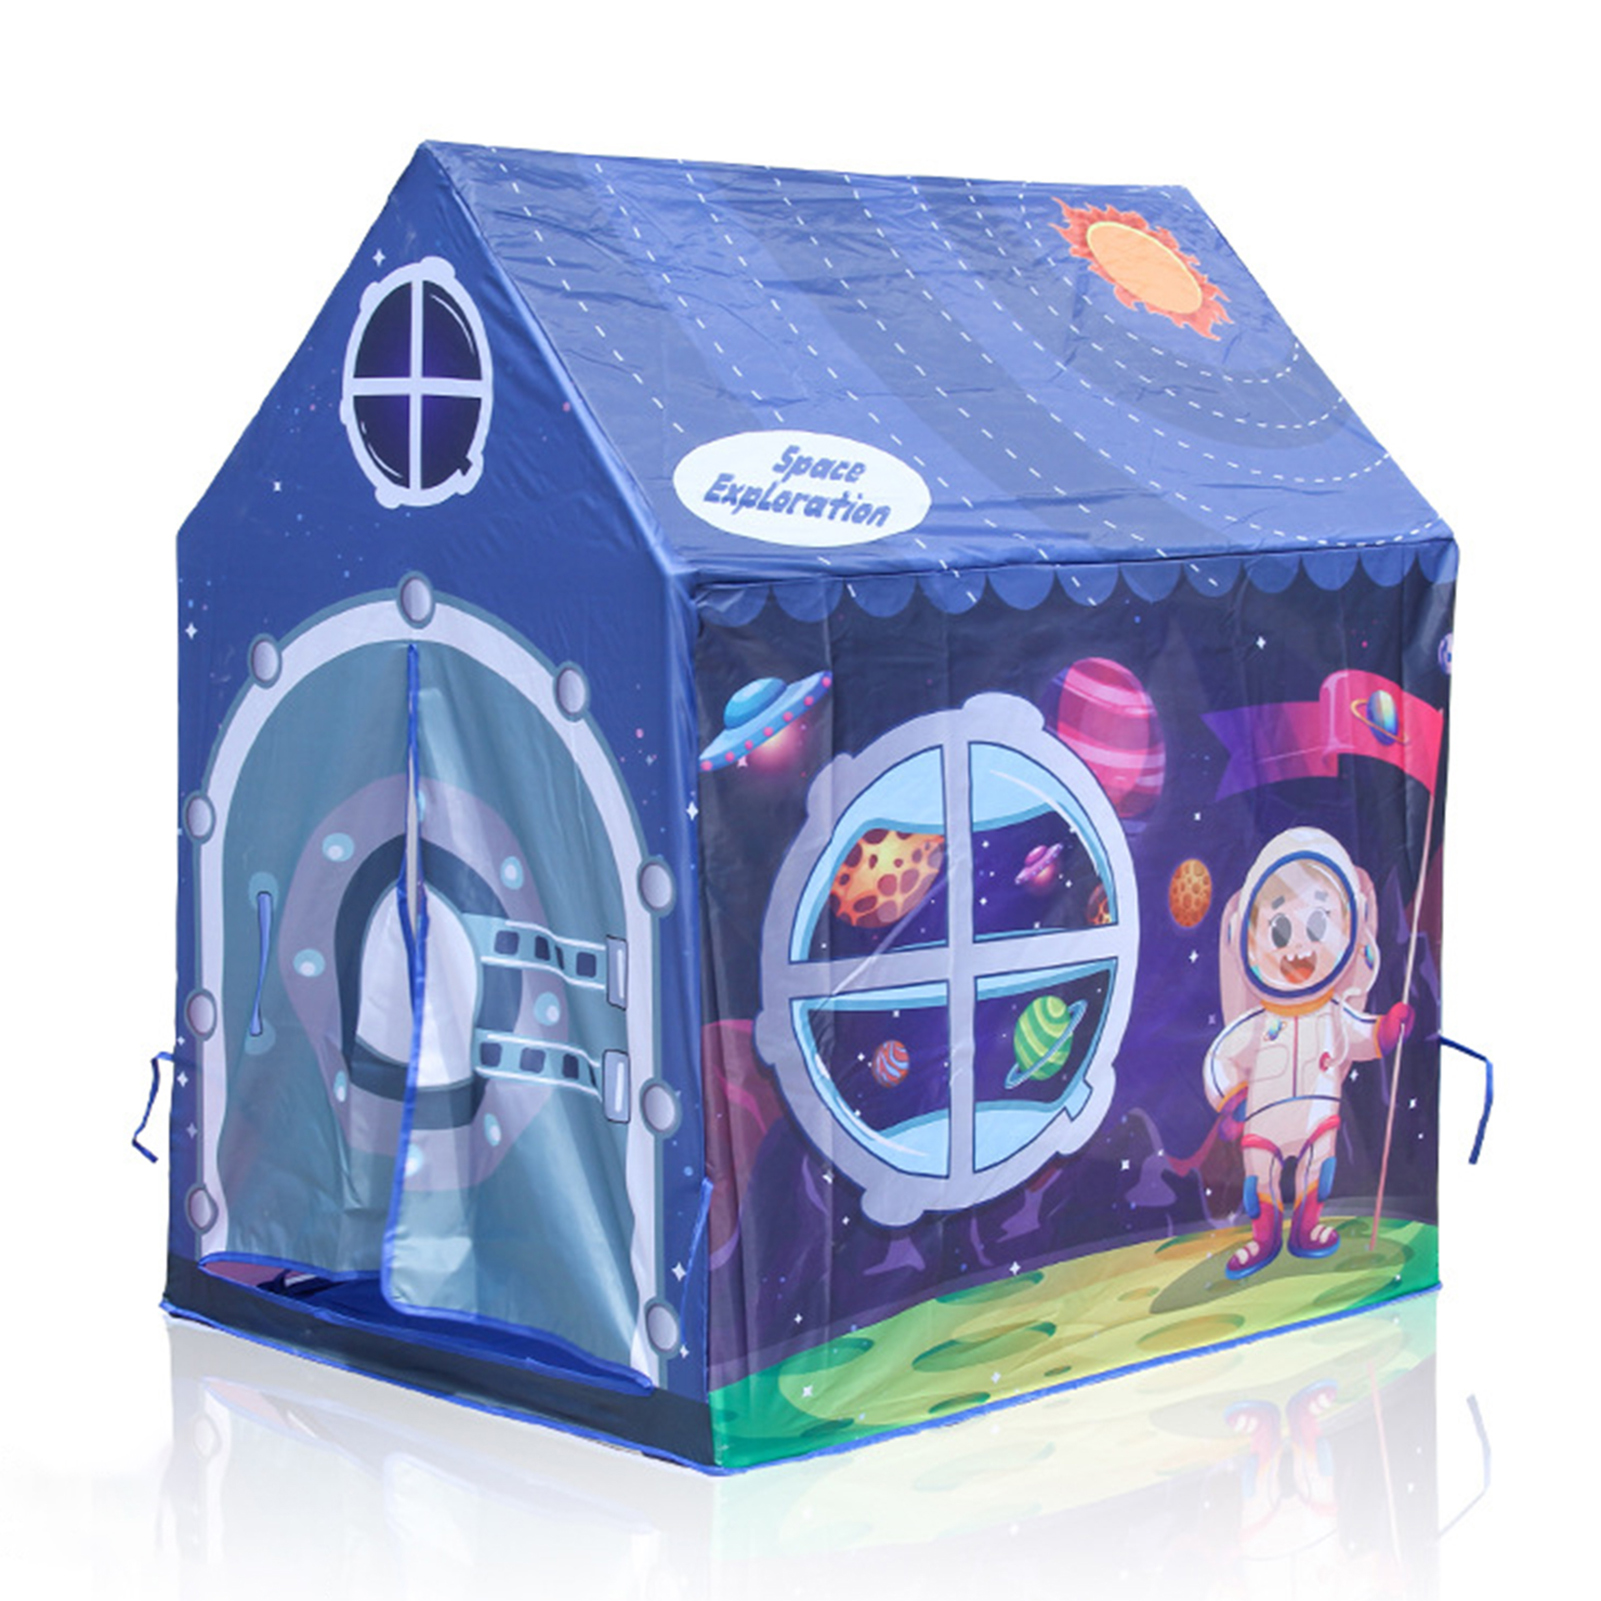 Children Outdoor Tent Play House Indoor Theme Role-playing Portable Playhouse Tent Set Room Decoration Tent Excellent